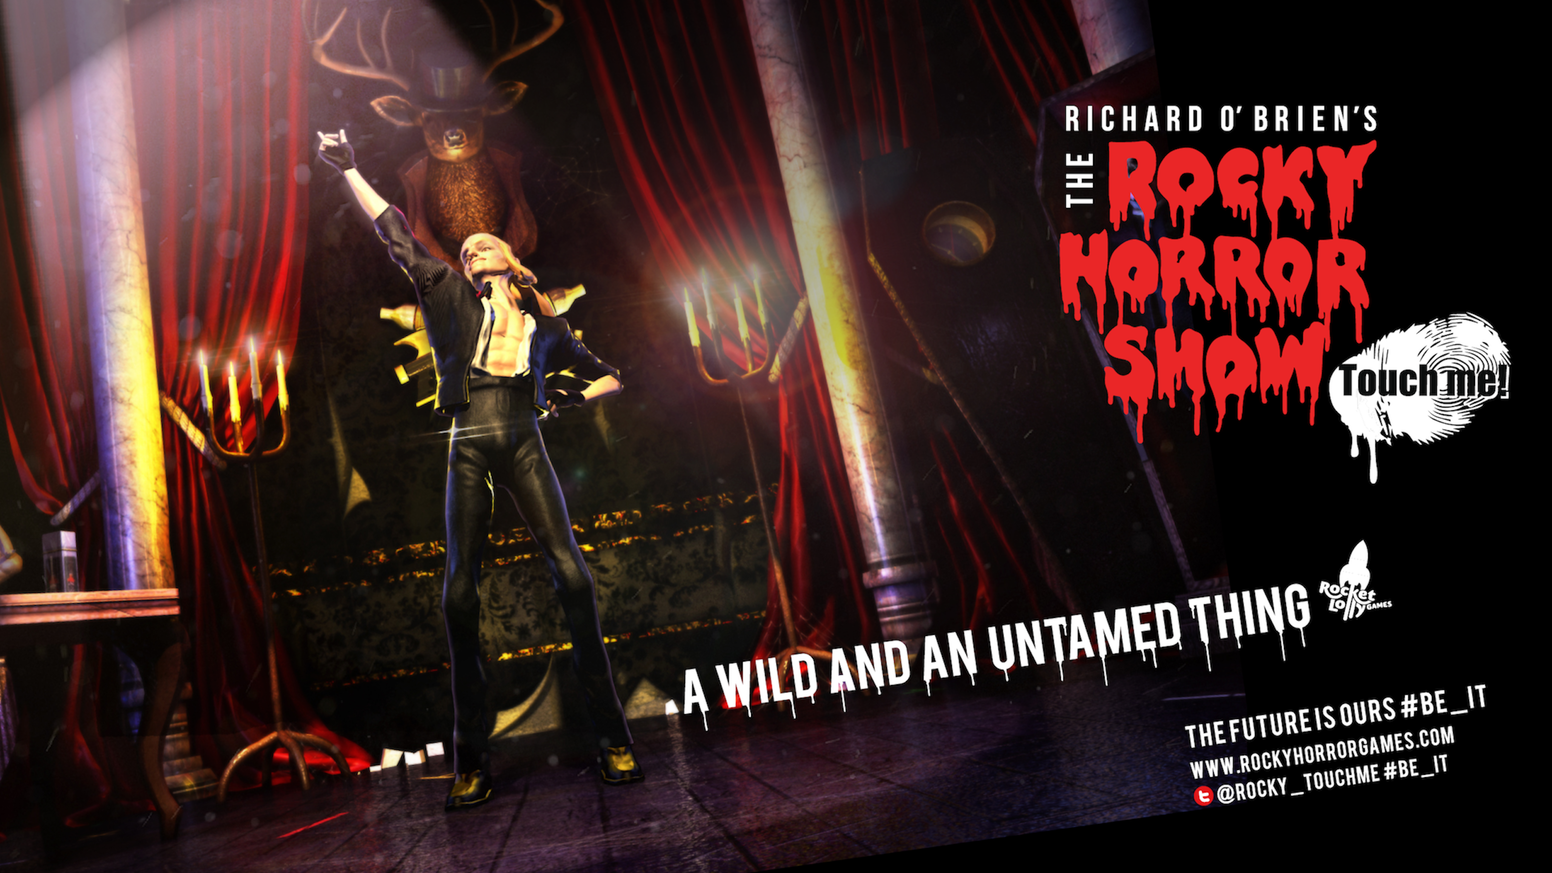 The Official Richard O'Brien's The Rocky Horror Show game with a tantalizing twist on the rhythm action genre for your tablet & mobile!